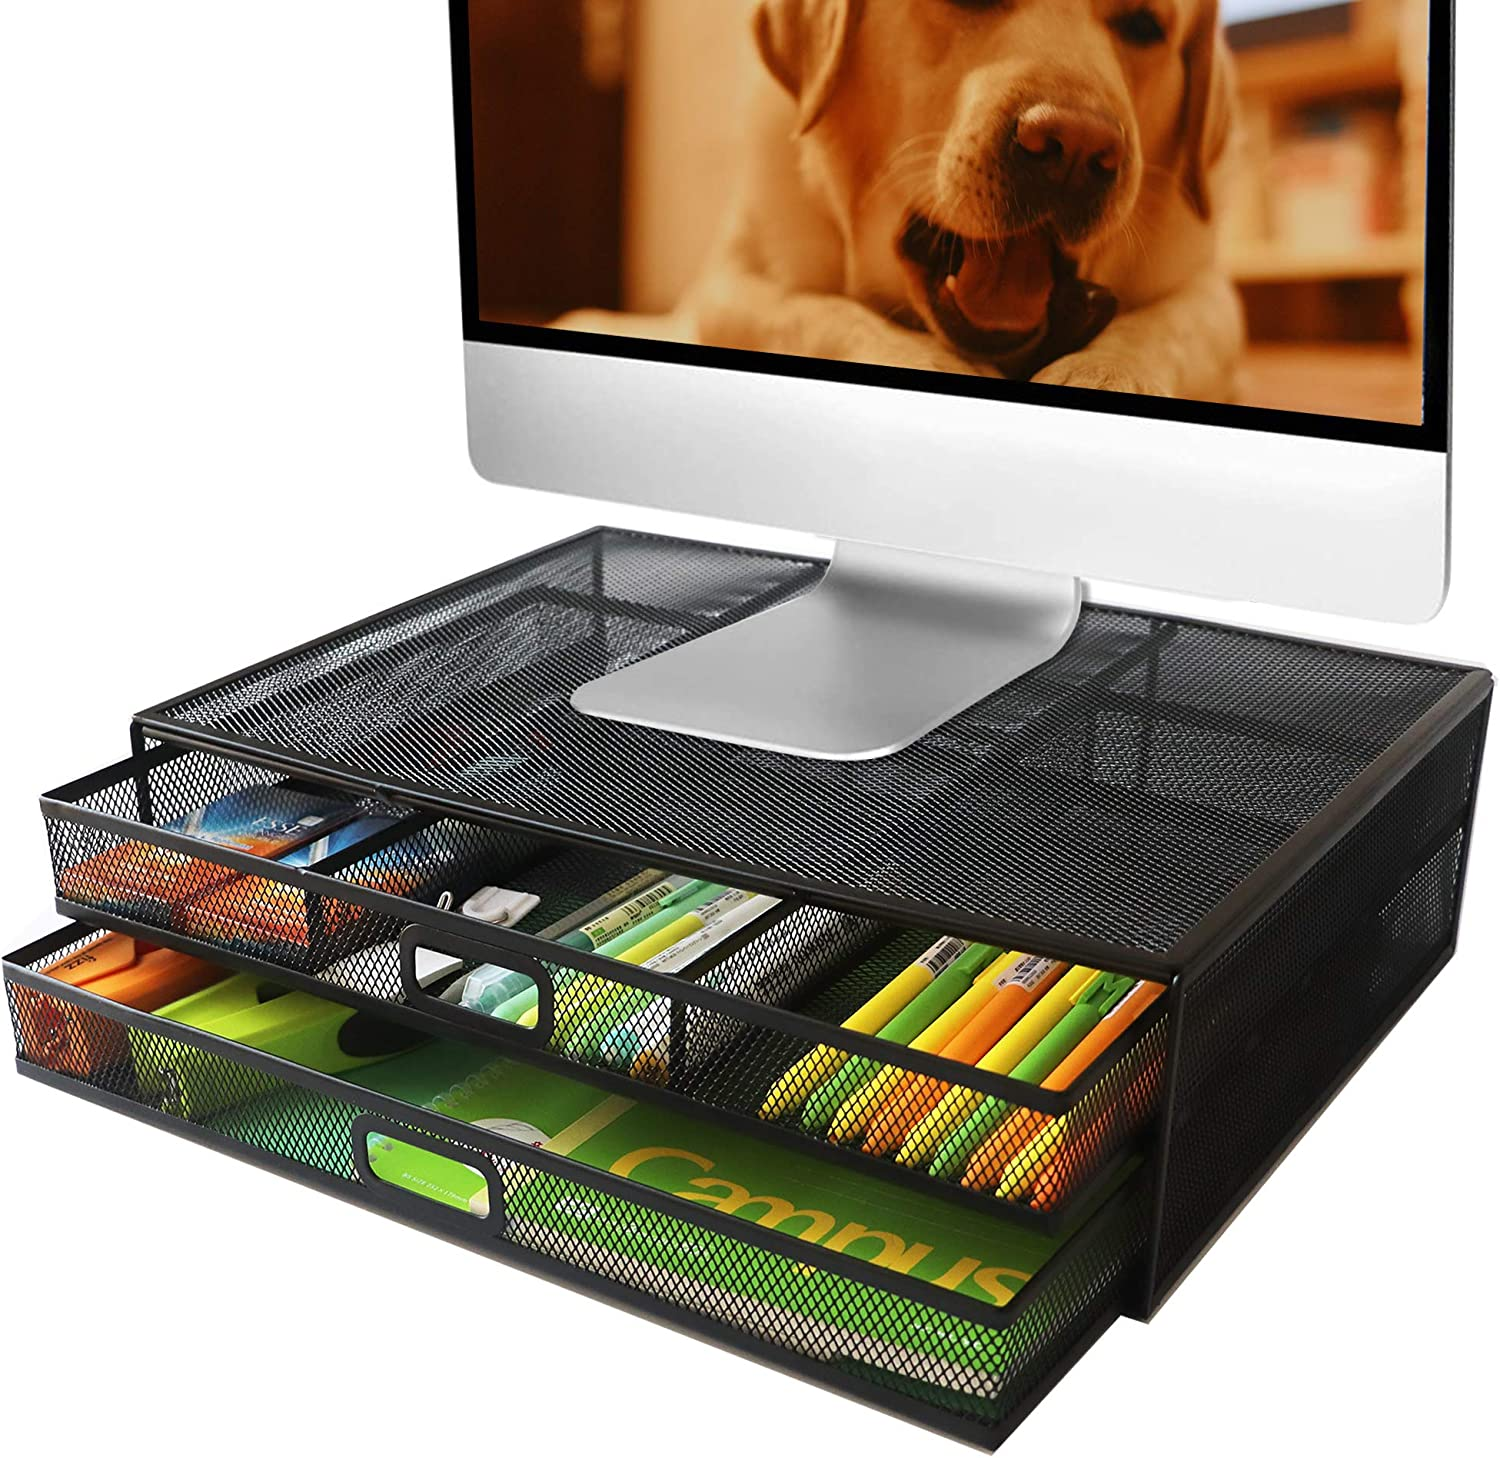 Monitor Stand Riser with Drawer - Metal Office Supply Mesh Desk Organizer and Storage with 2 Large Pullout Drawers for Laptop PC Printer Computer, Black